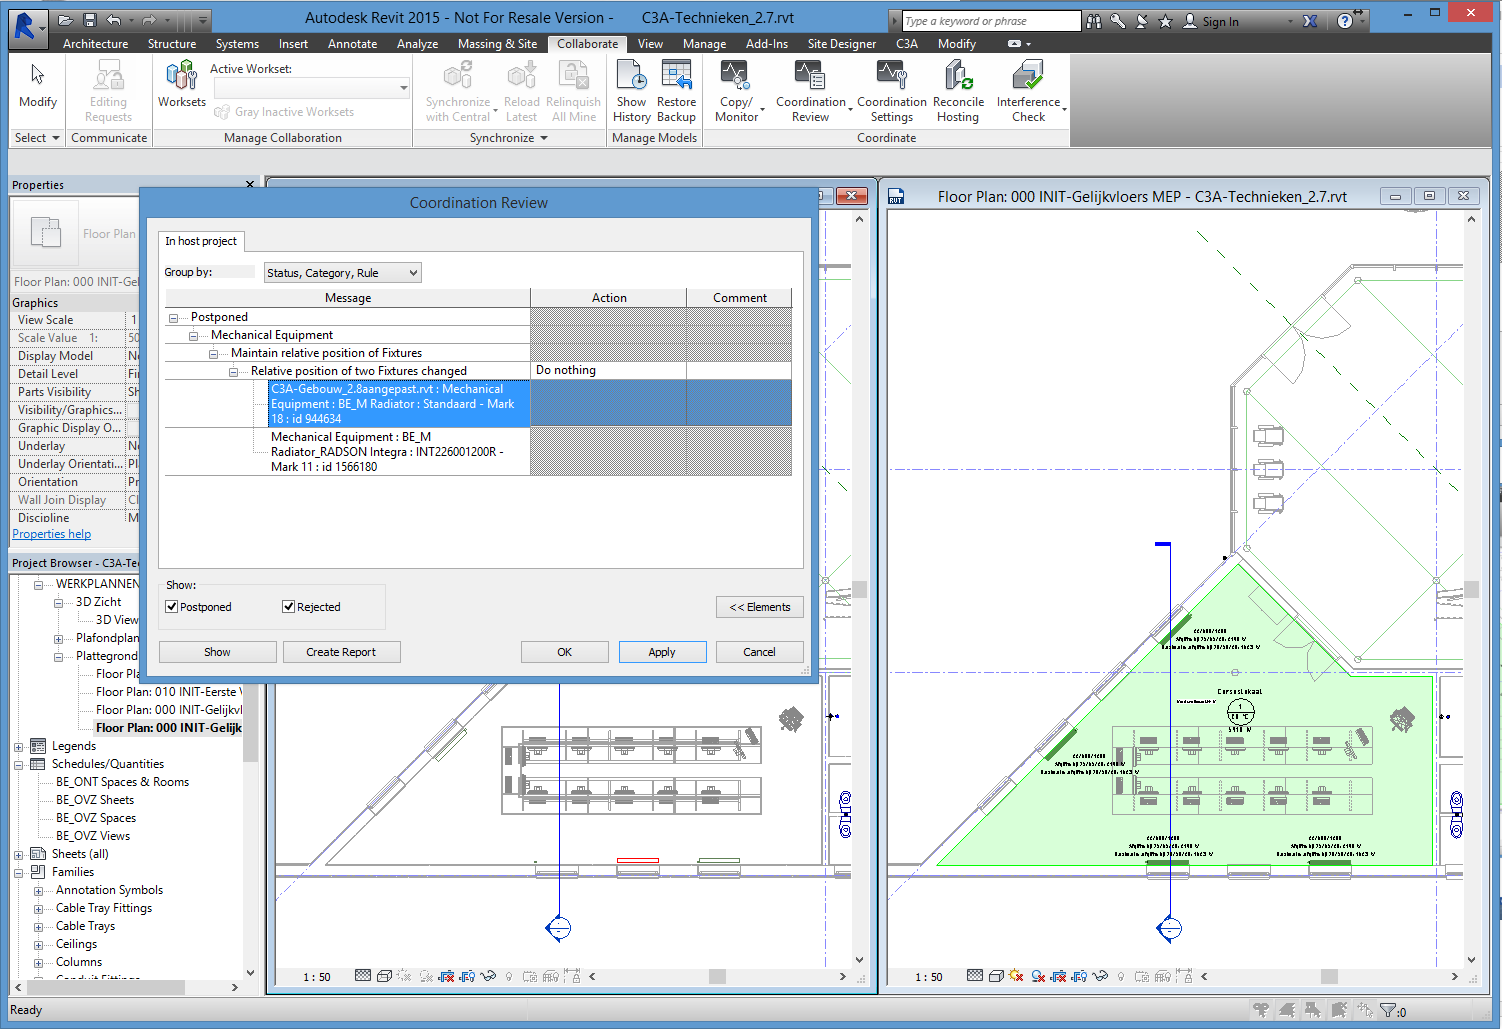 blad 34 REVIT Multidiciplinair